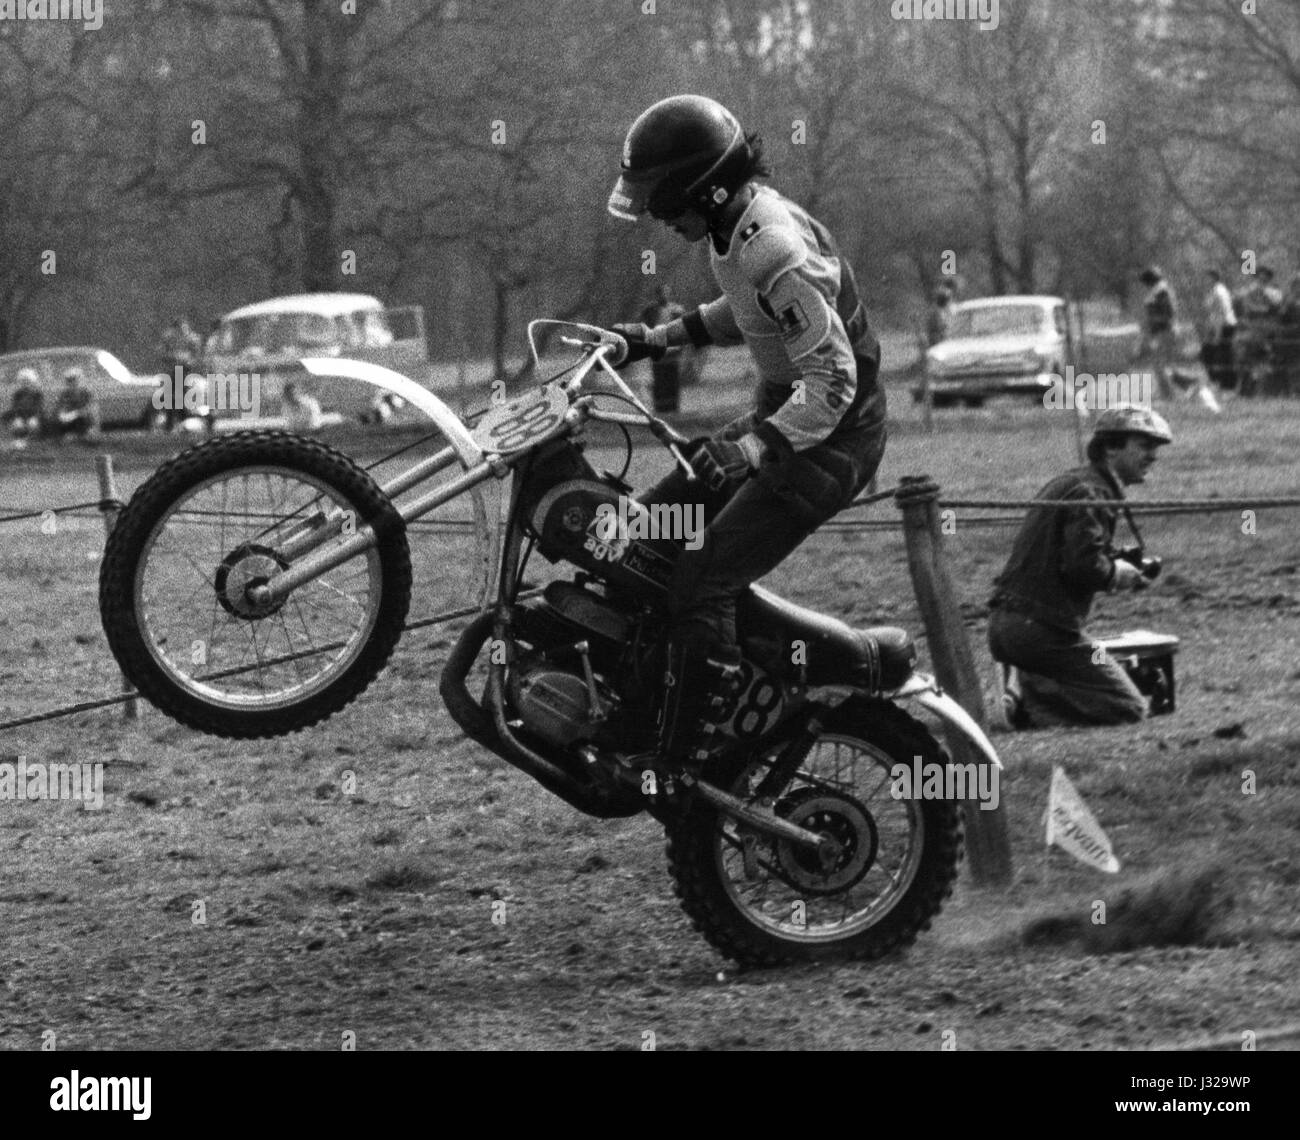 A rider performs a wheelie while competing in a motorcycle scrambling event at  Crawley in Sussex, England on April Stock Photo